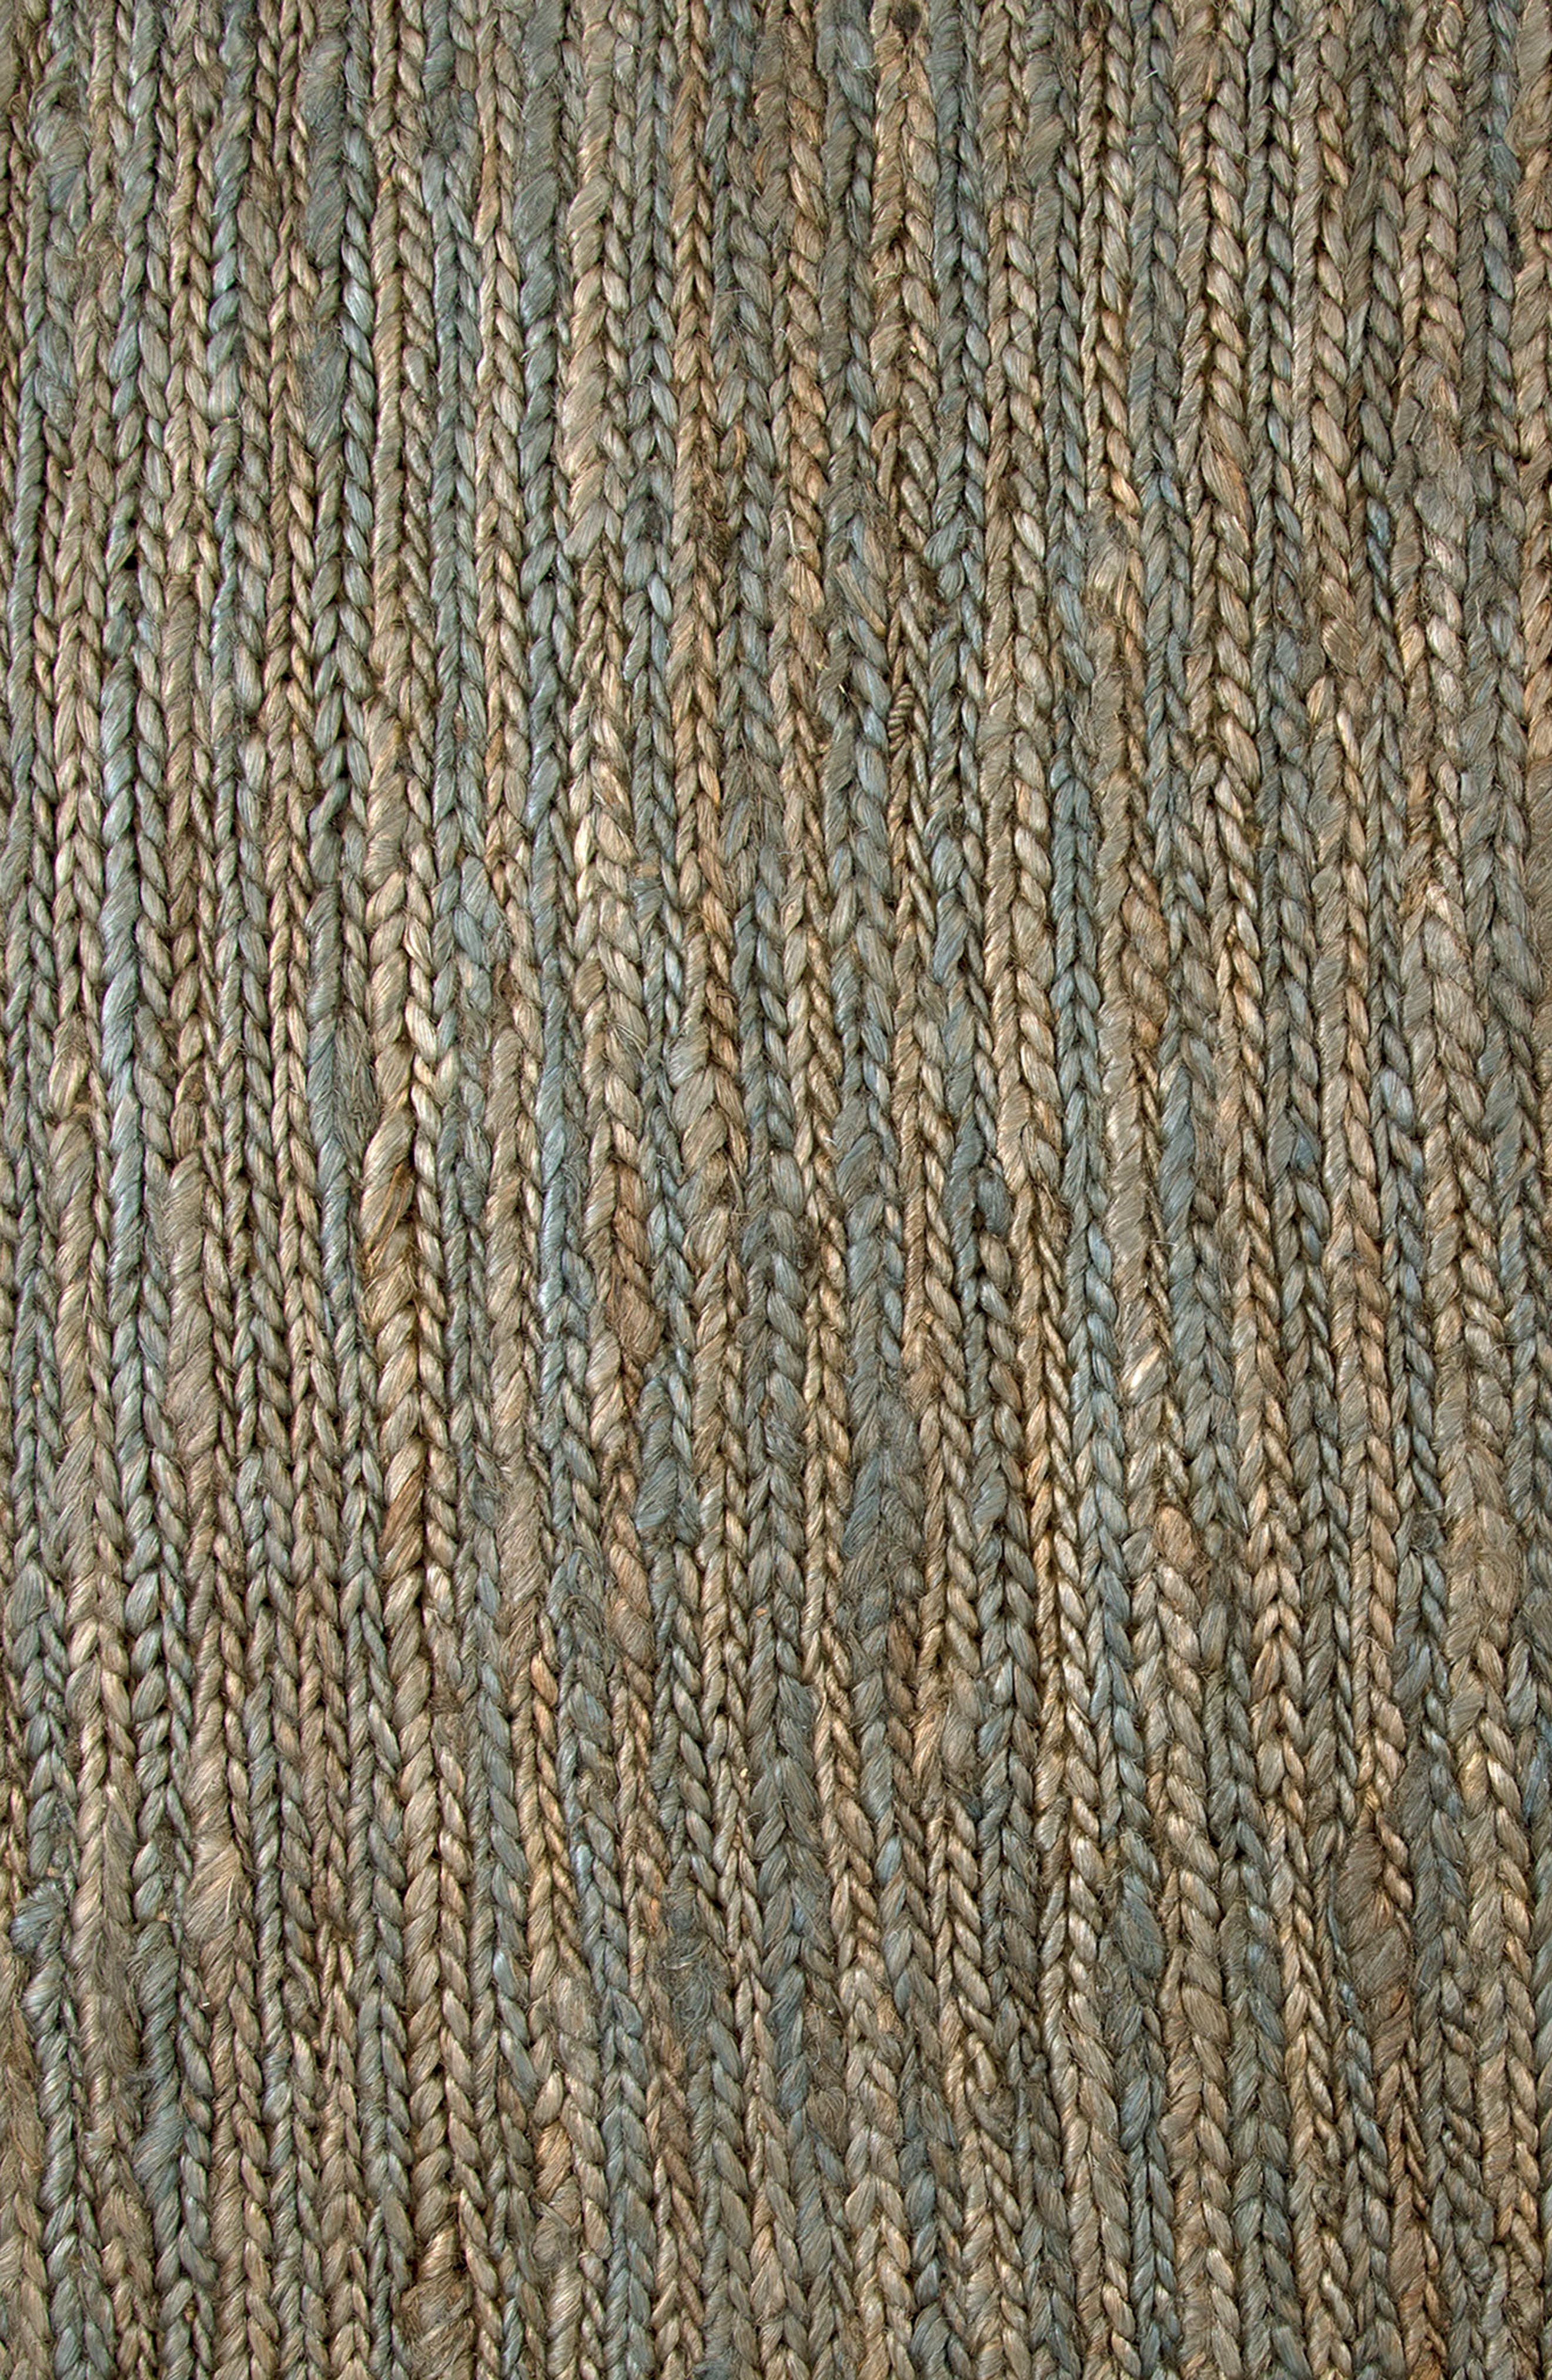 'Whittier Collection' Handwoven Jute Area Rug,                             Alternate thumbnail 3, color,                             400